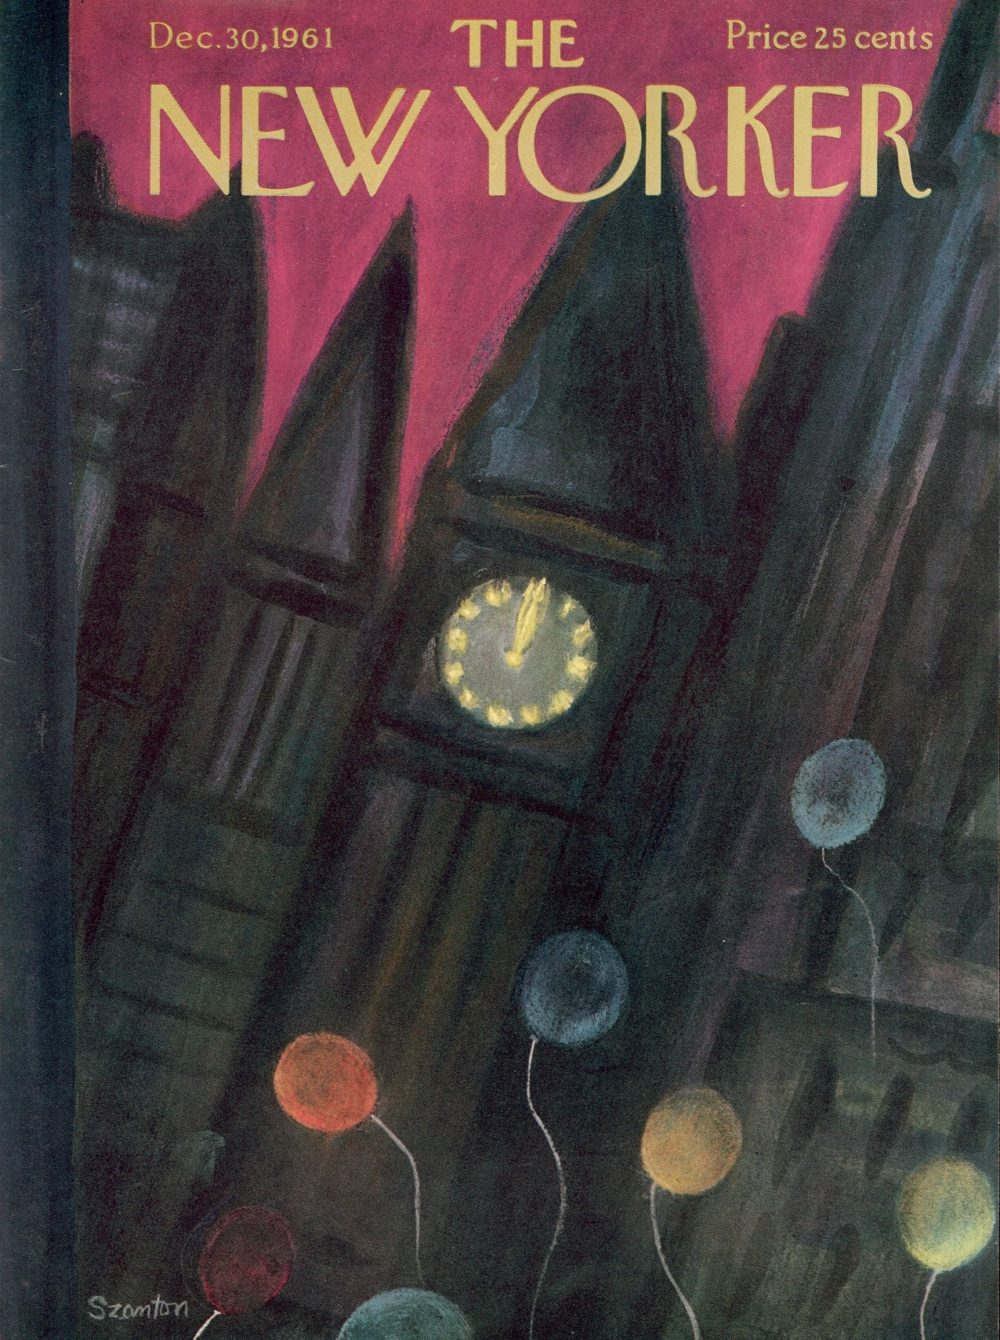 New Yorker magazine covers for the new year